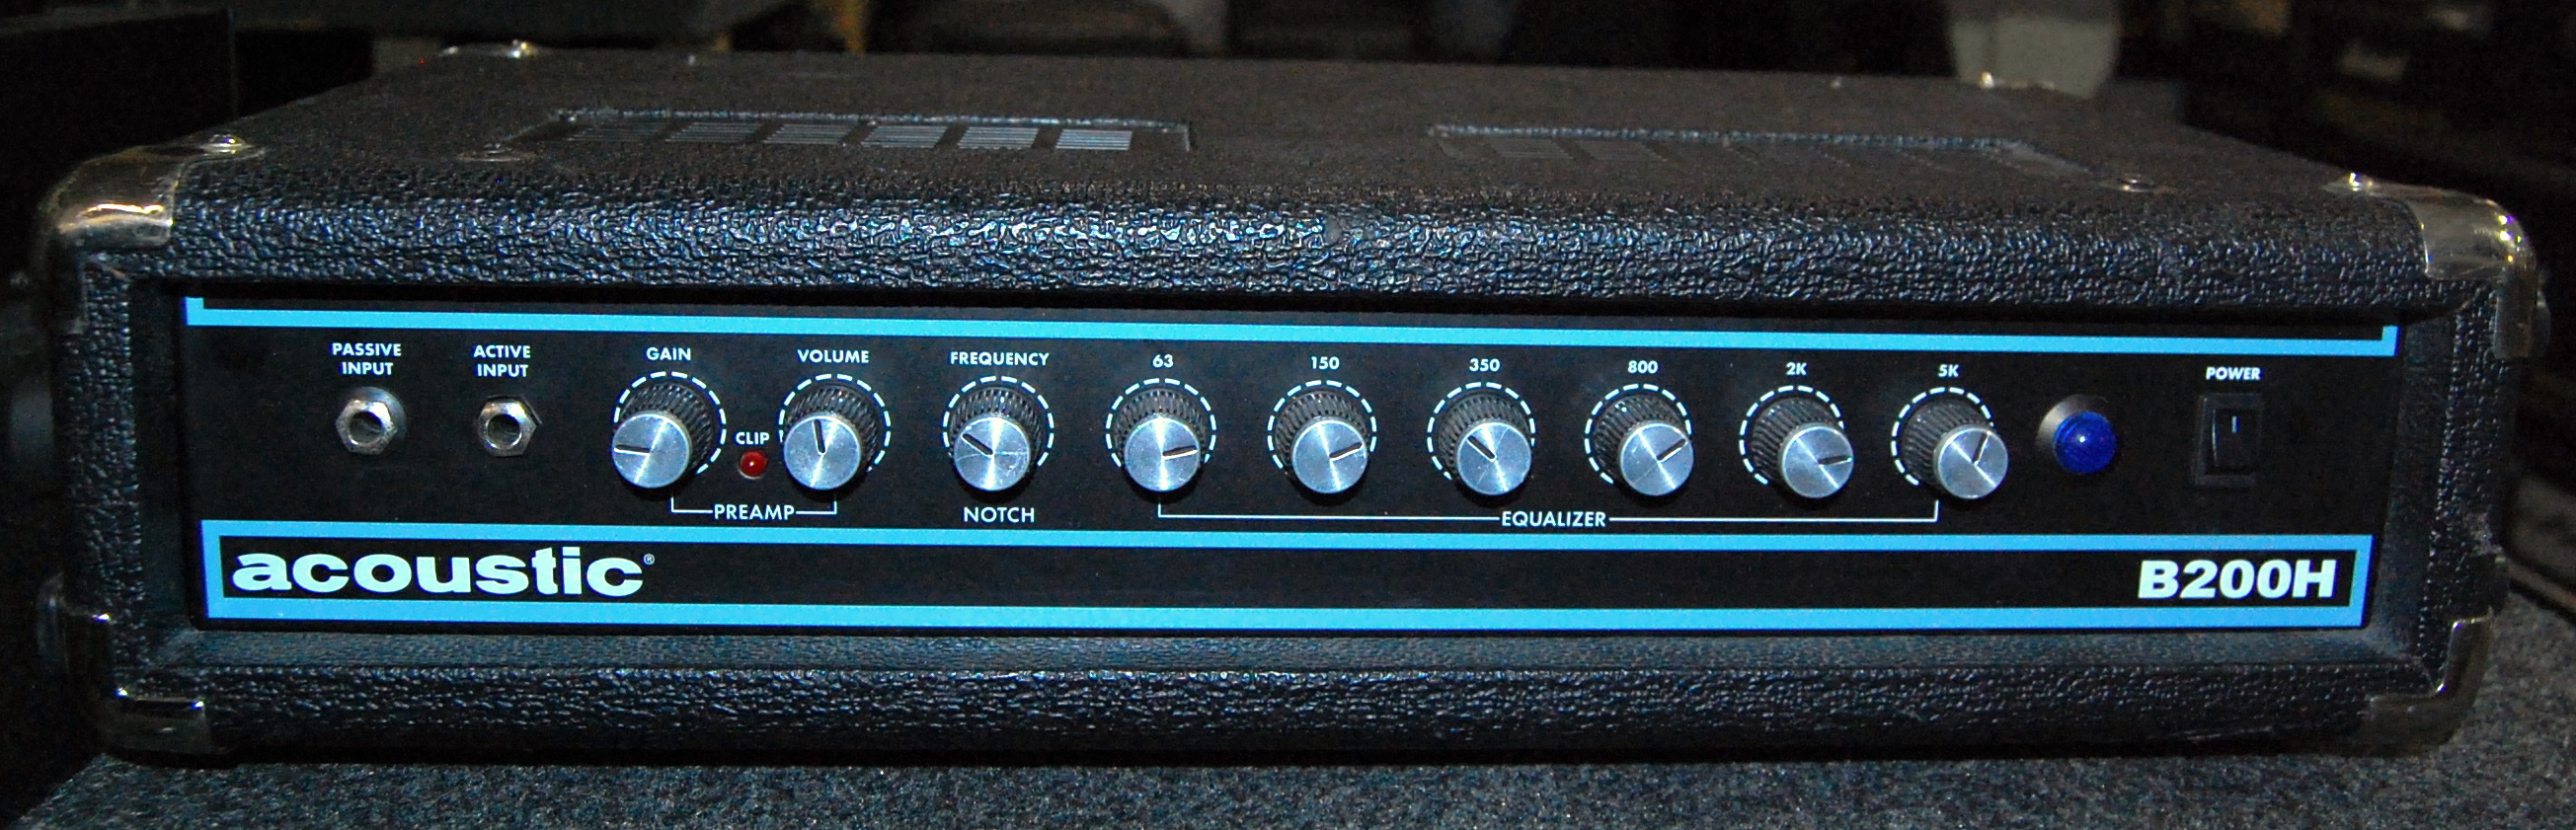 ACOUSTIC B200H 200W Bass Guitar Amplifier Amp Head